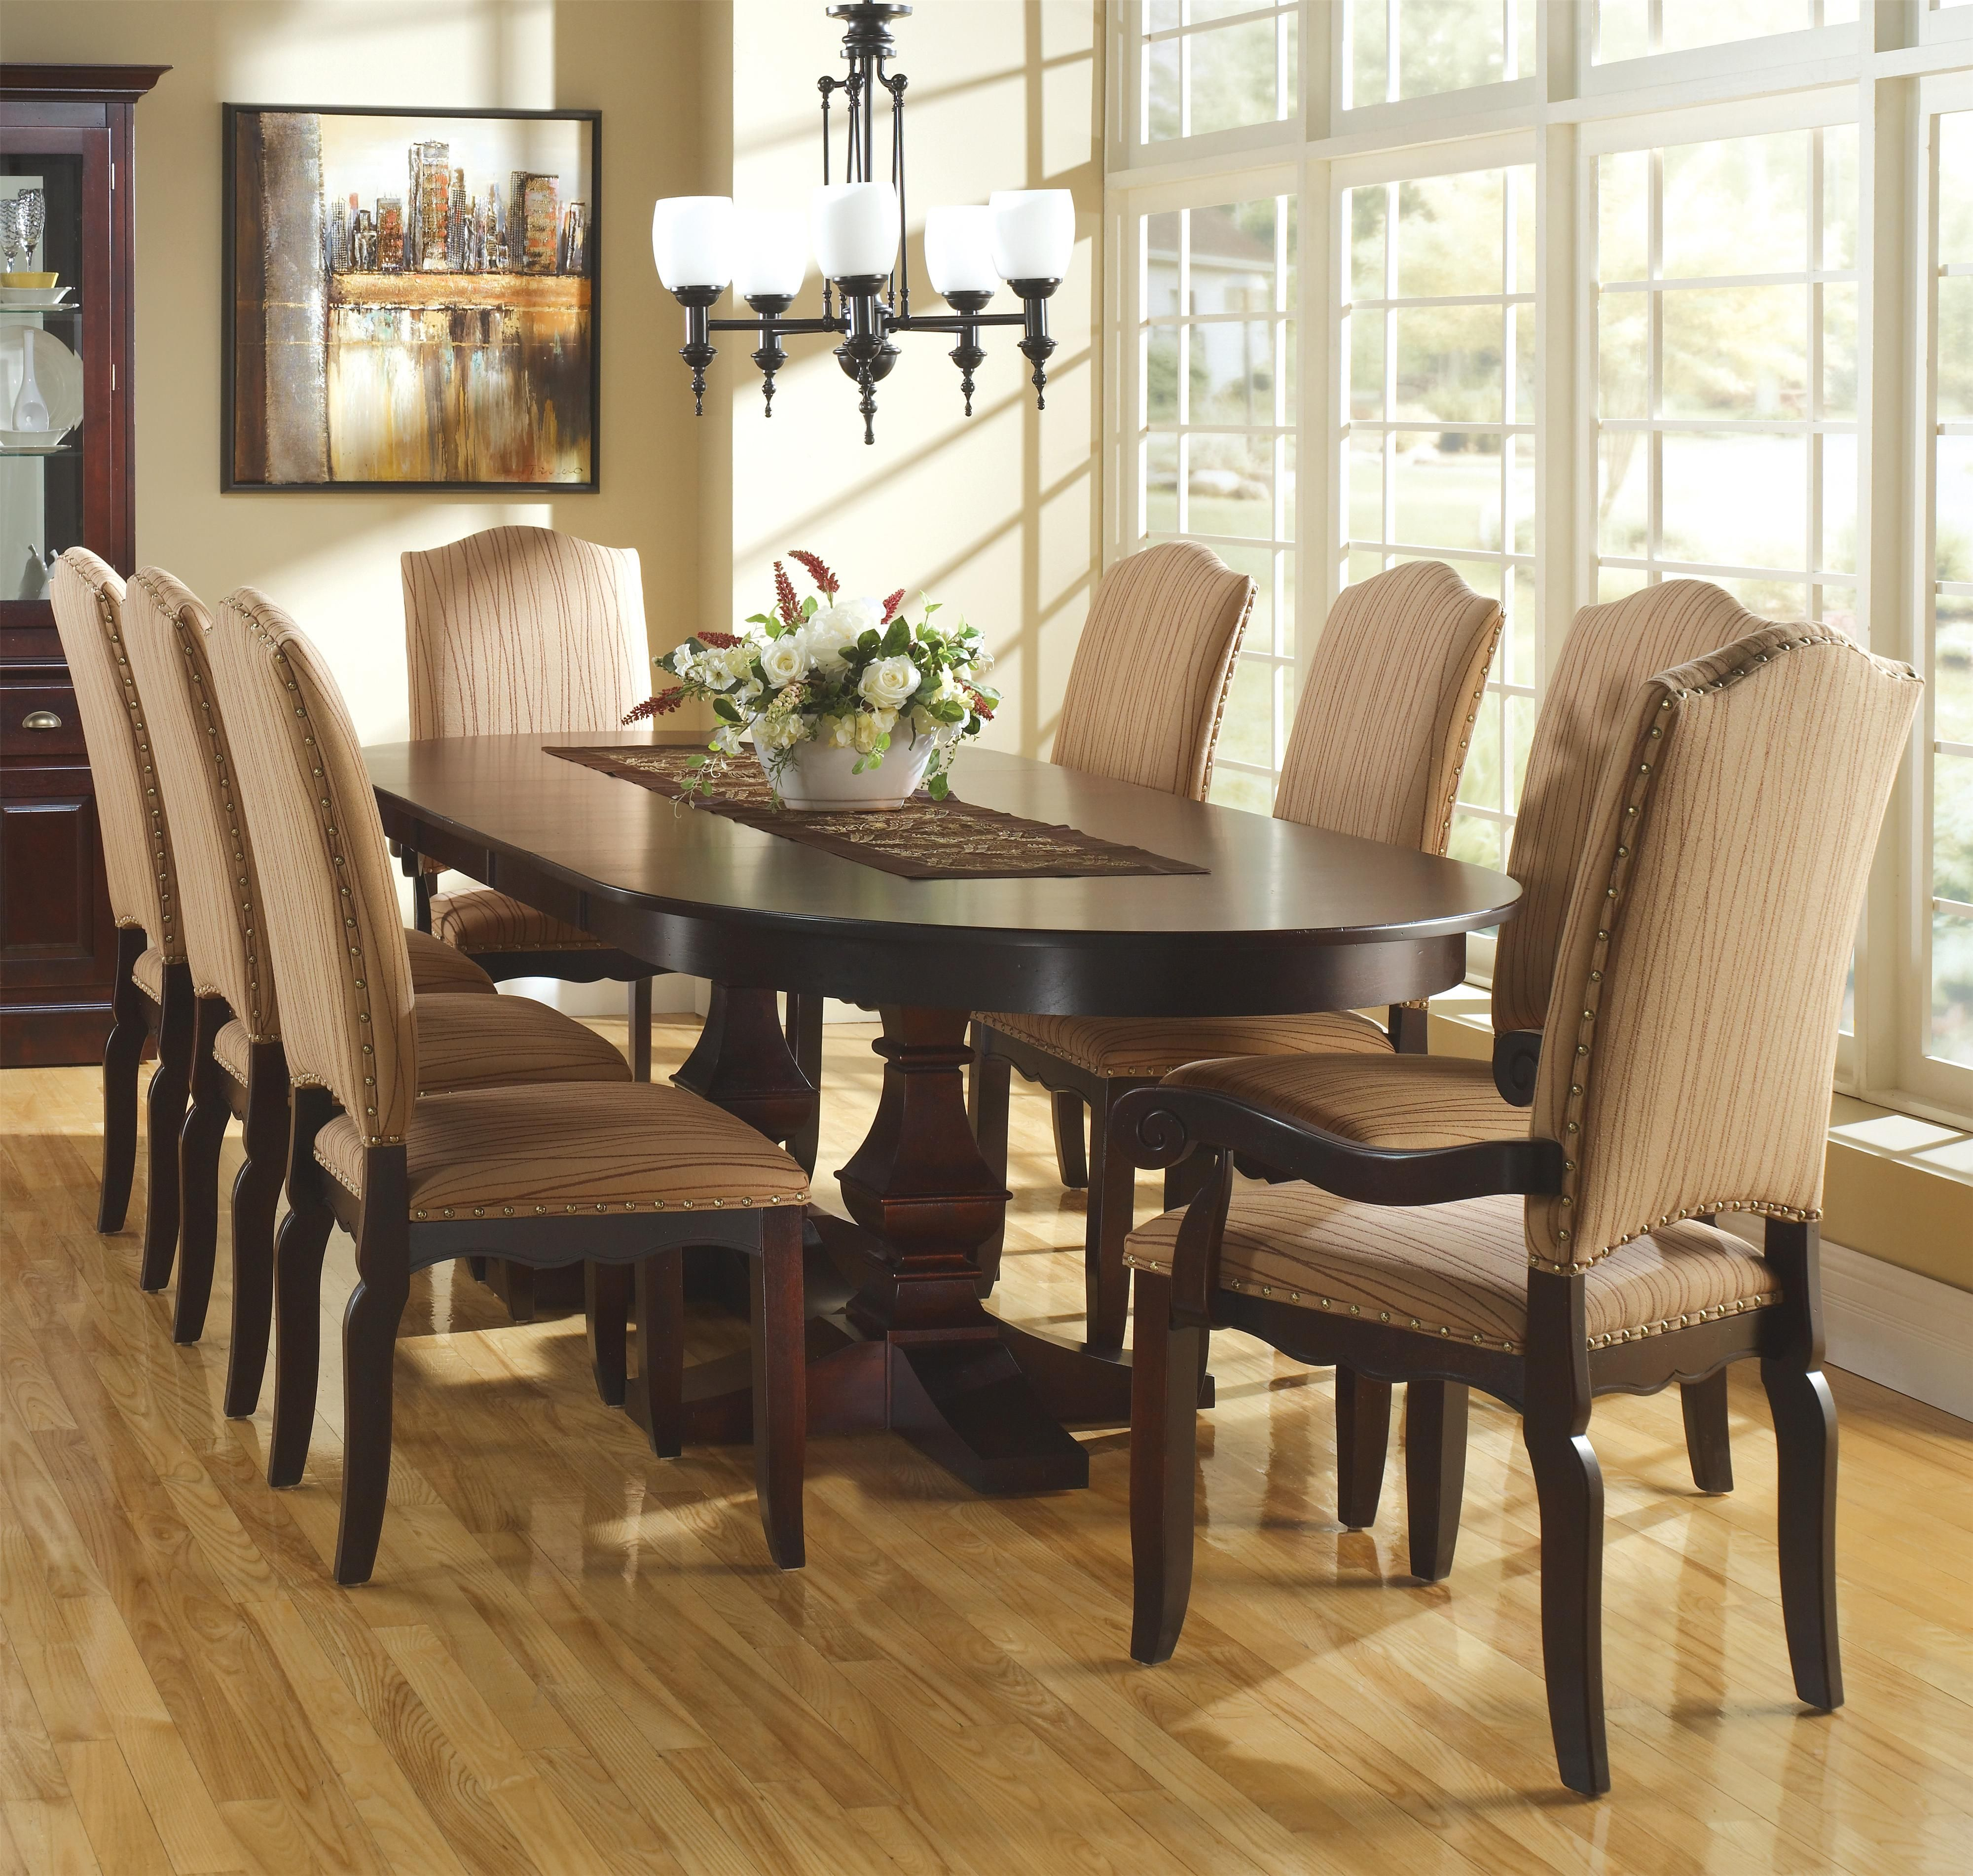 Dining Room Tables With Leaves: Custom Dining Customizable Oval Table Set W/ Leaves By Canadel